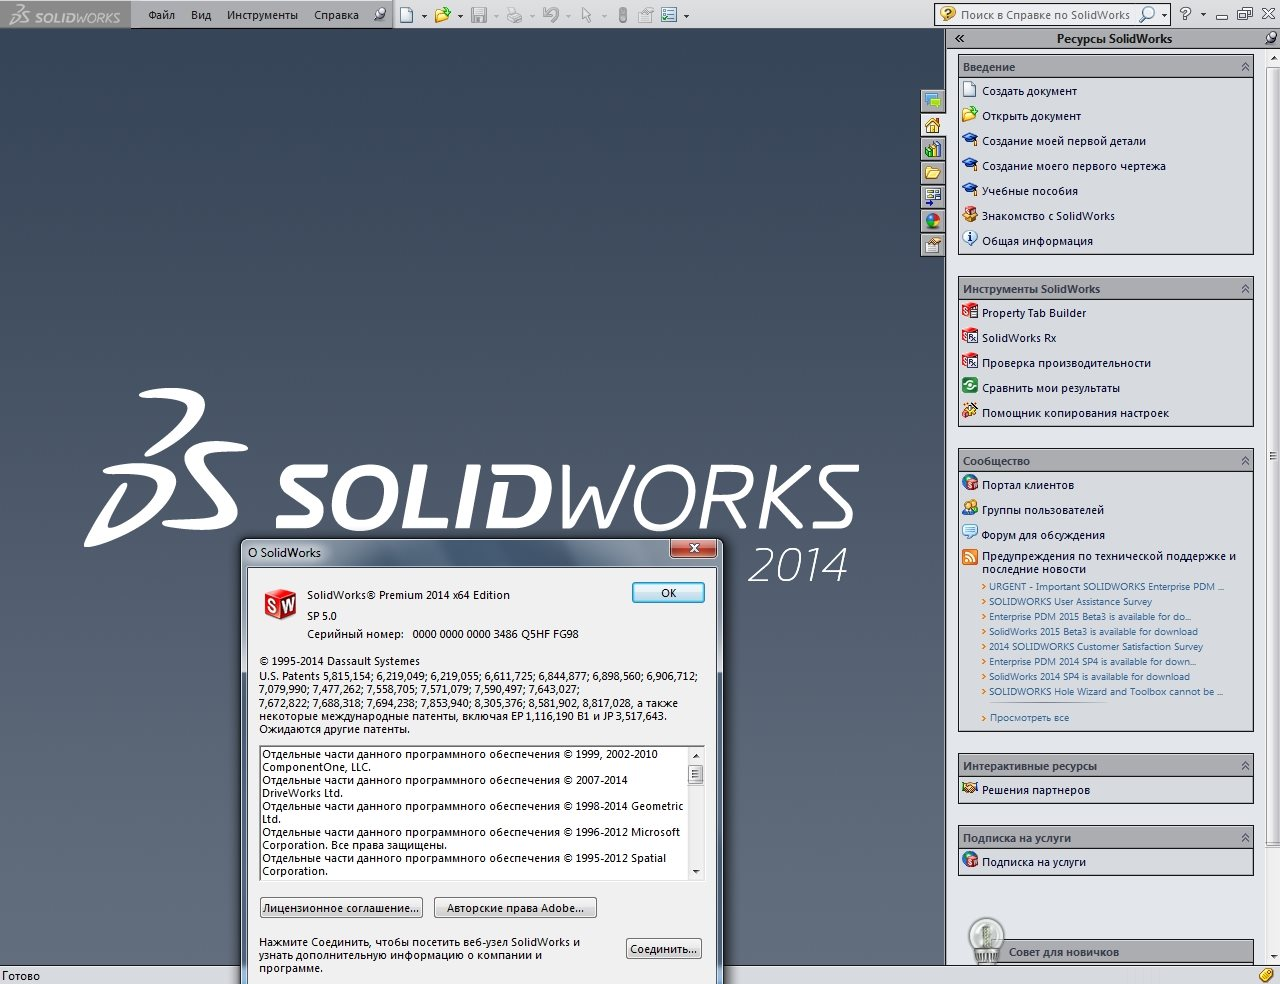 SolidWorks Premium Edition 2014 SP5.0 [Multi/Ru]